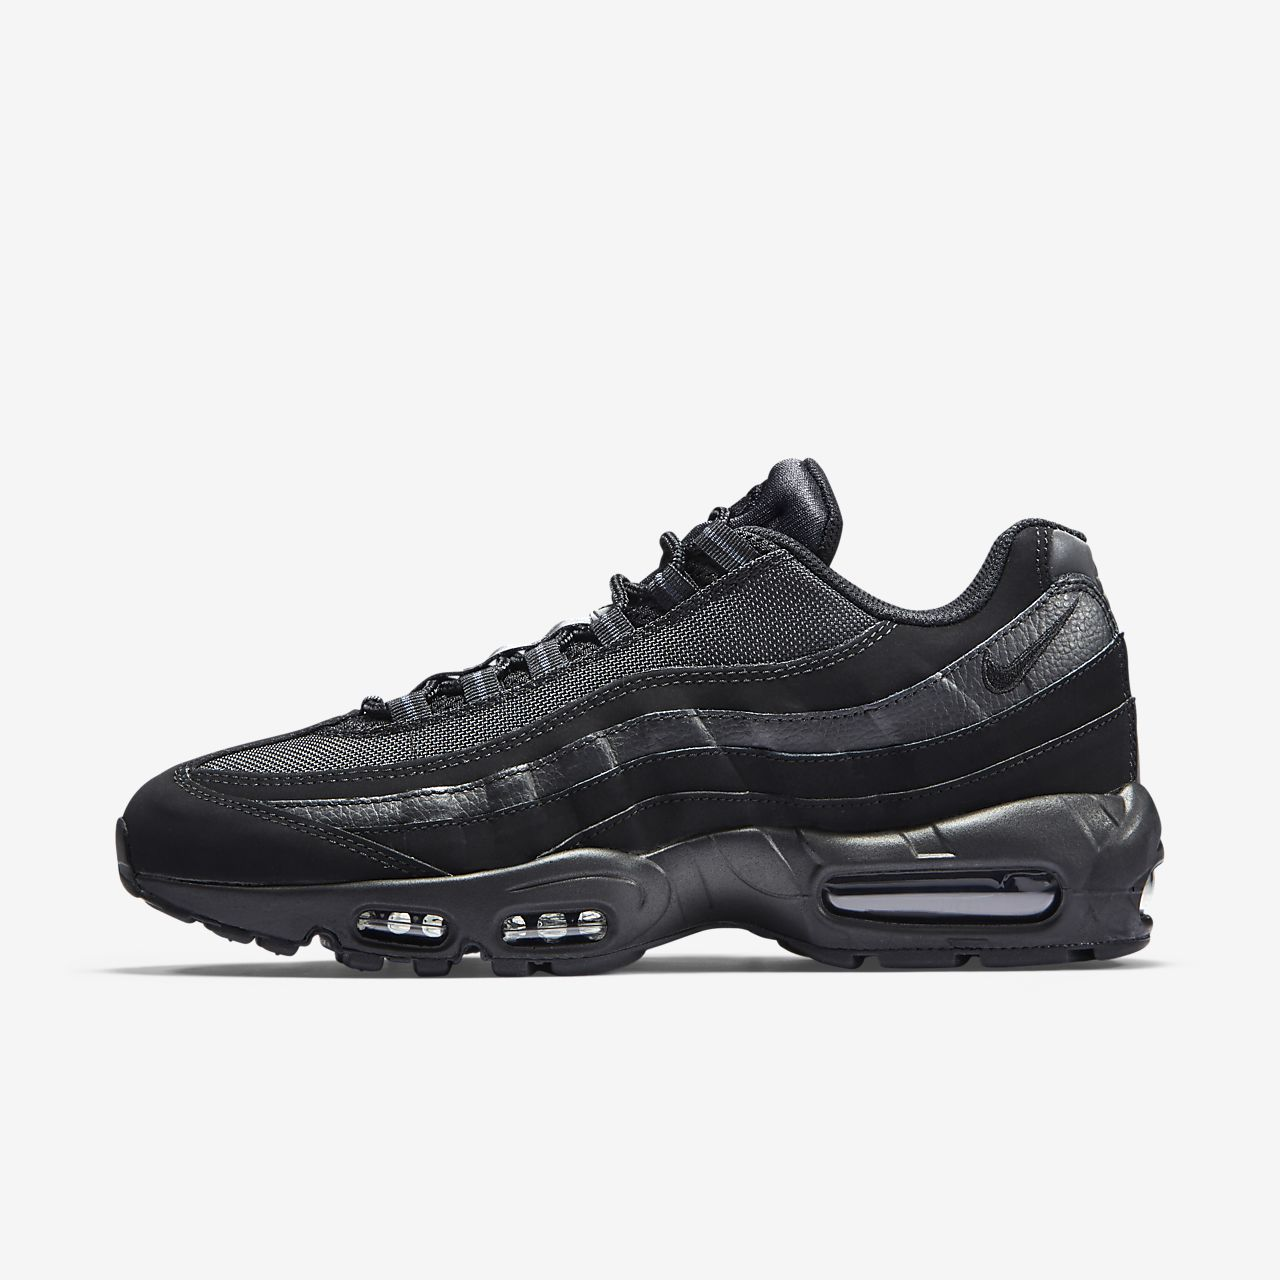 temperament shoes get new aliexpress Chaussure Nike Air Max 95 pour Homme